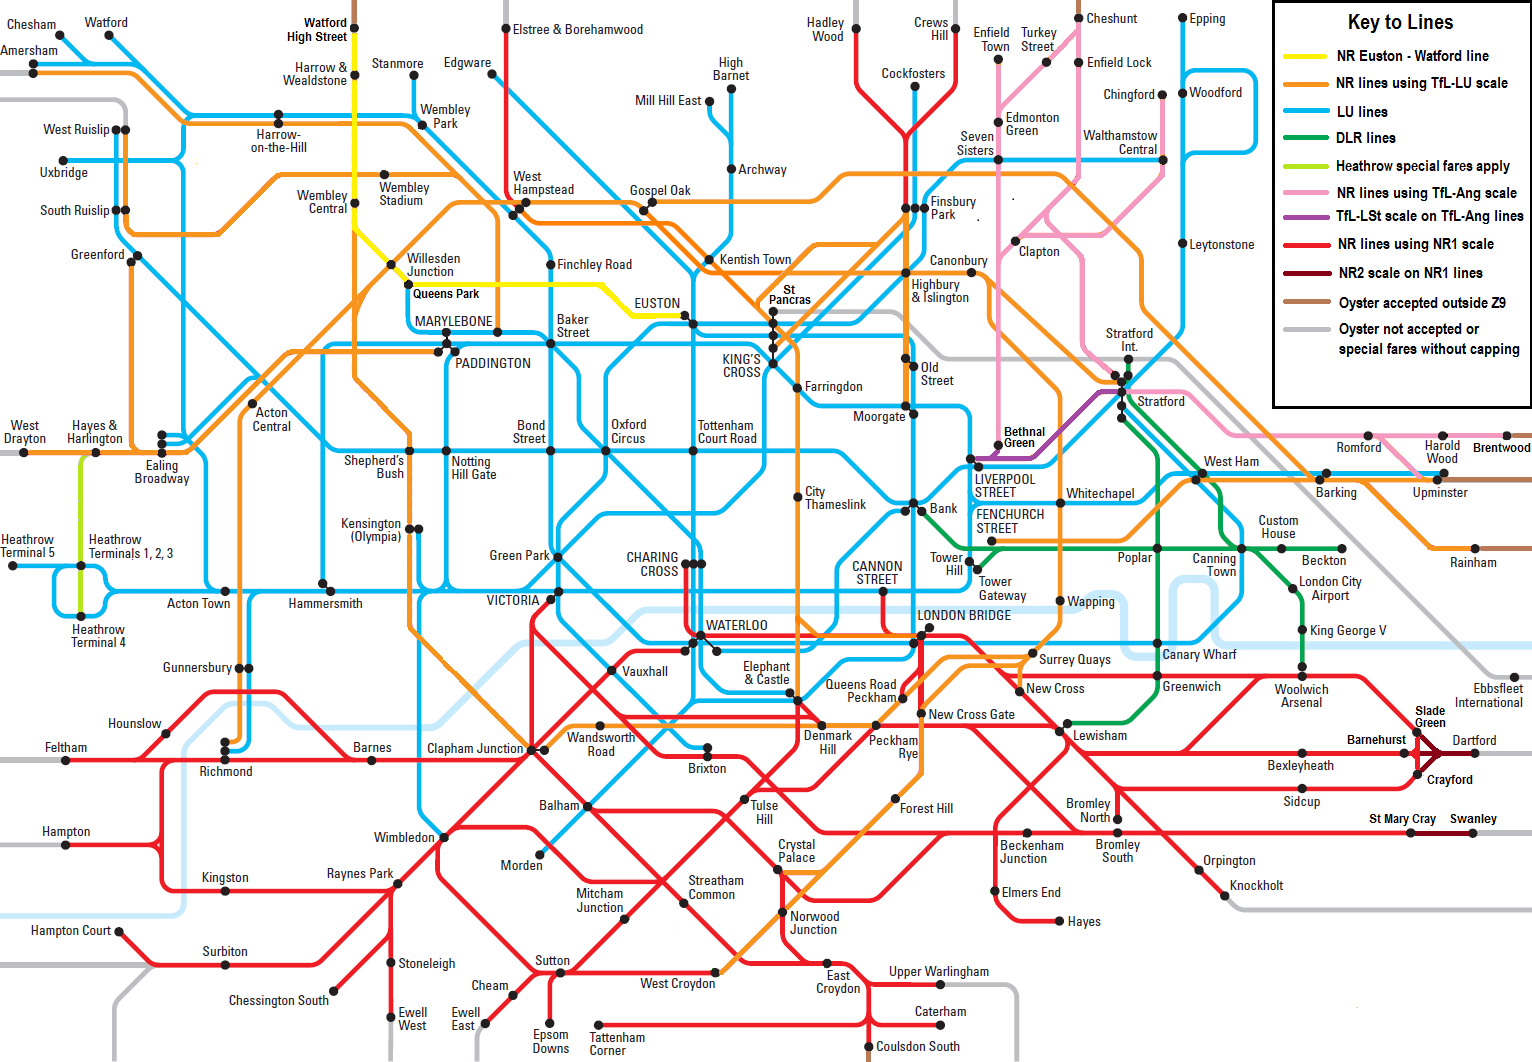 Oyster Card Zones 1 9 Map Oyster and National Rail » Guide to Fare Scales